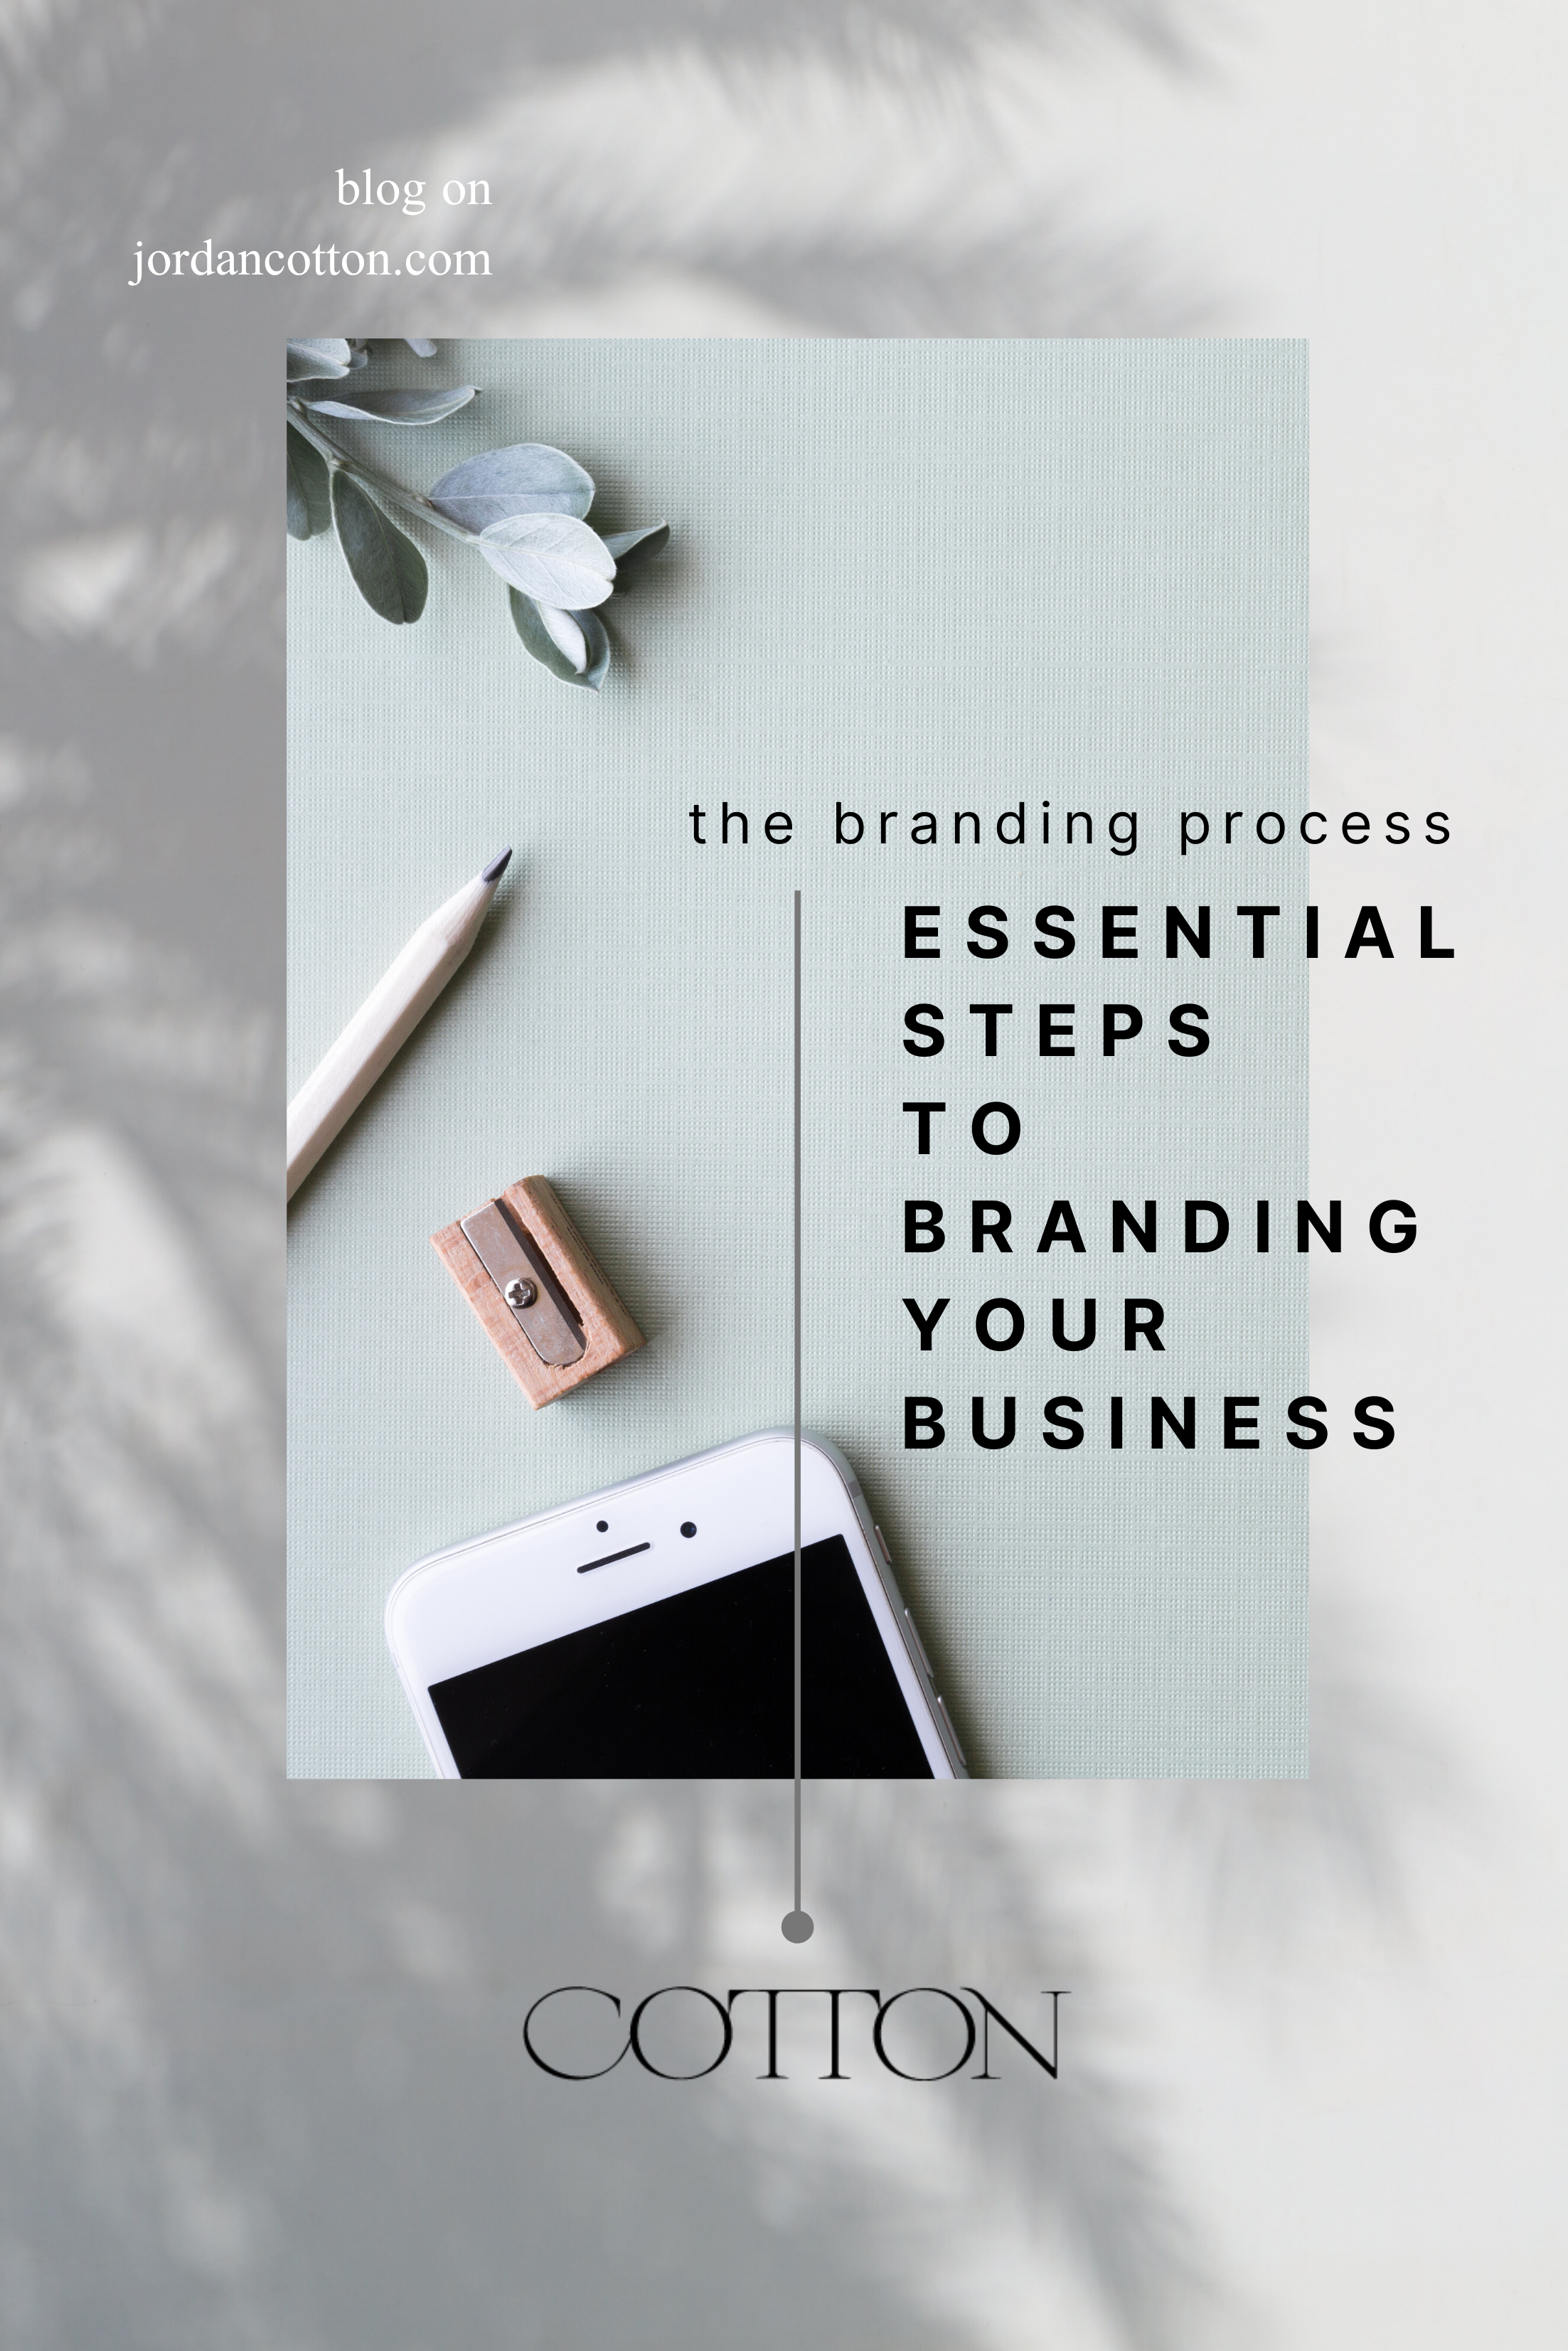 The Branding Process Essential Steps To Branding Your Business In 2020 Branding Process Branding Your Business Business Marketing Design